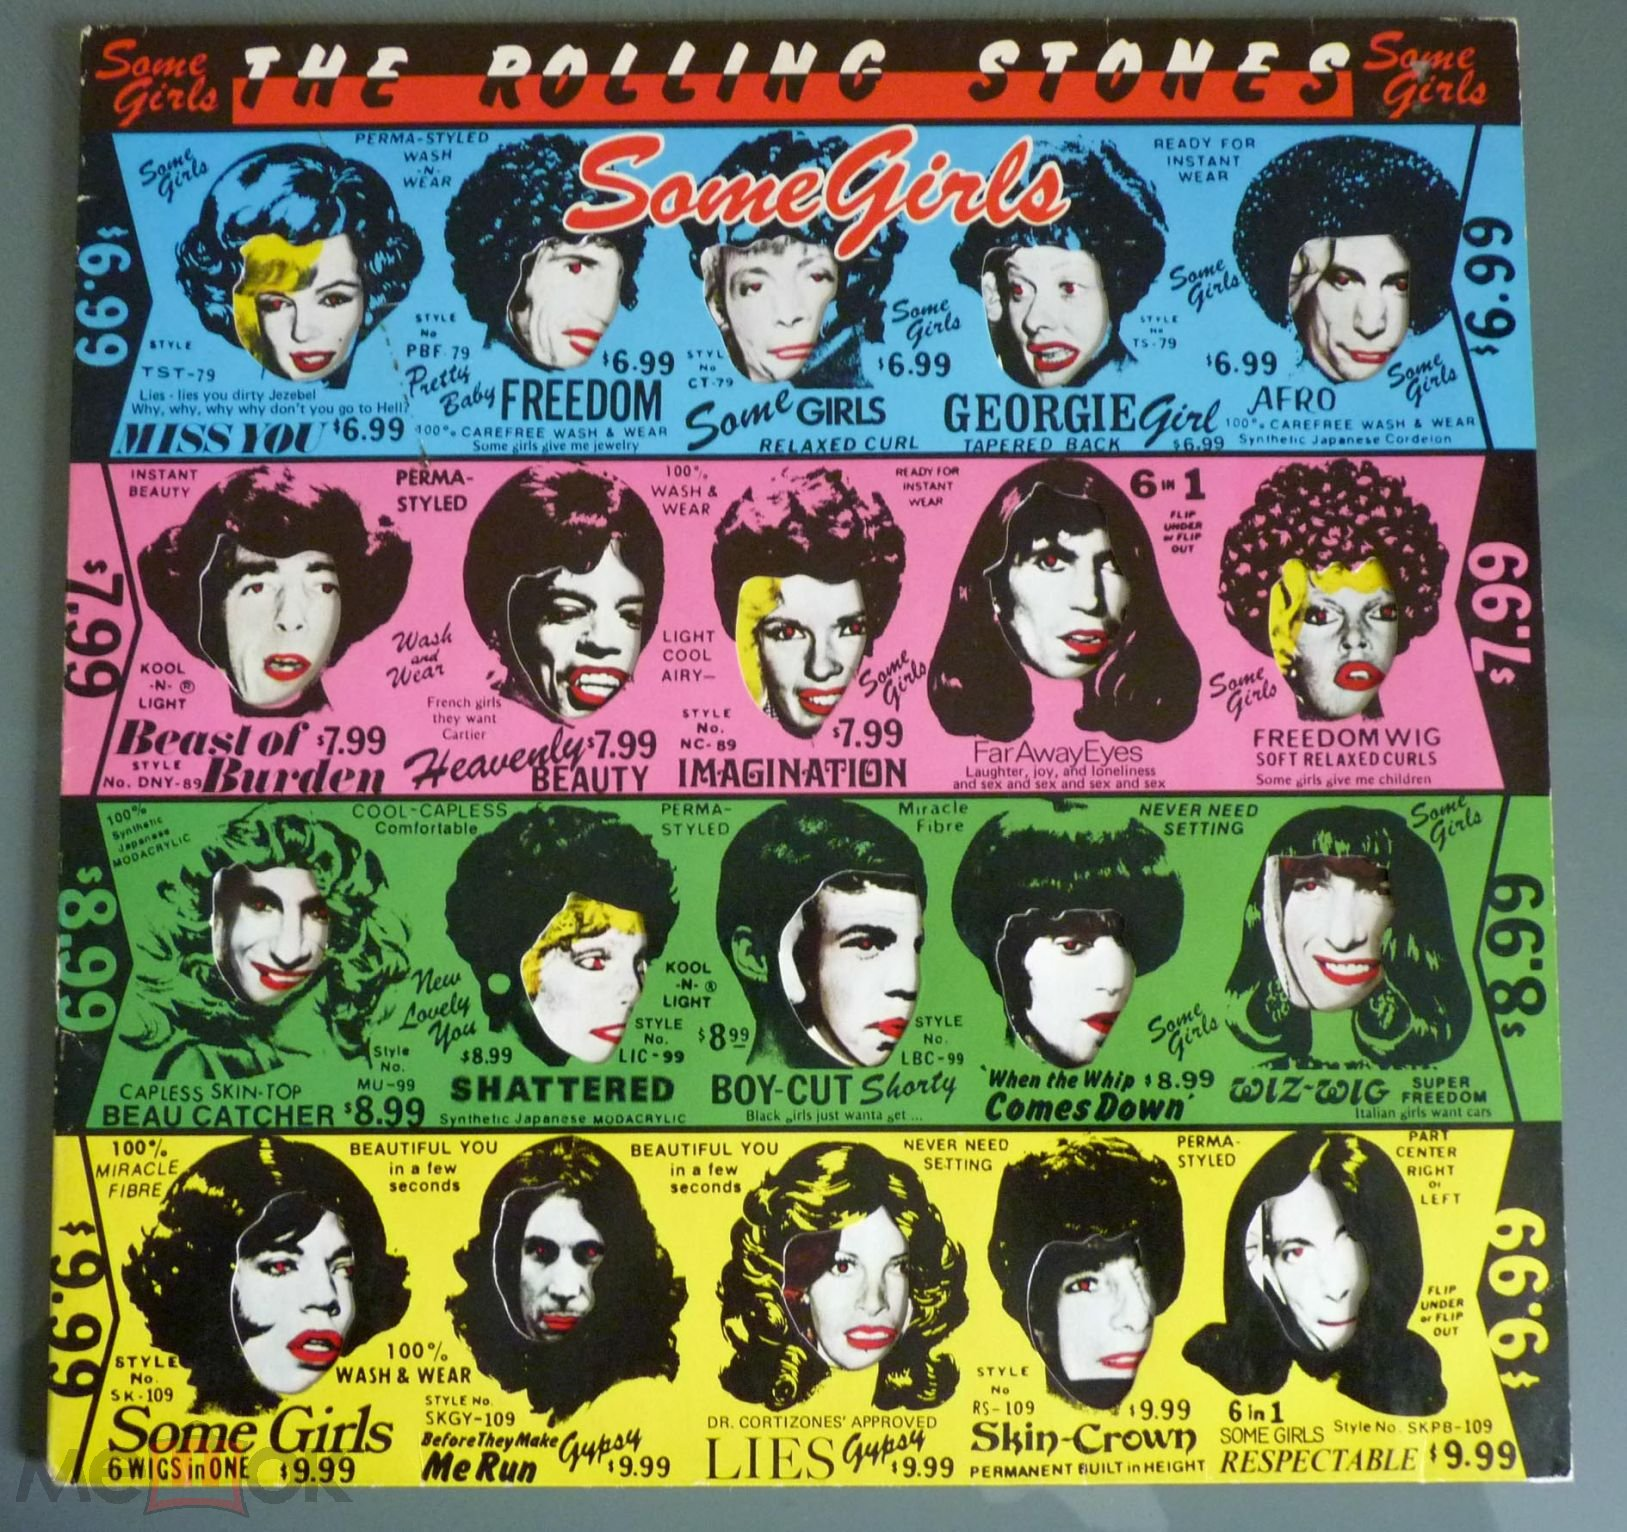 Rolling stones-some girls photos 37